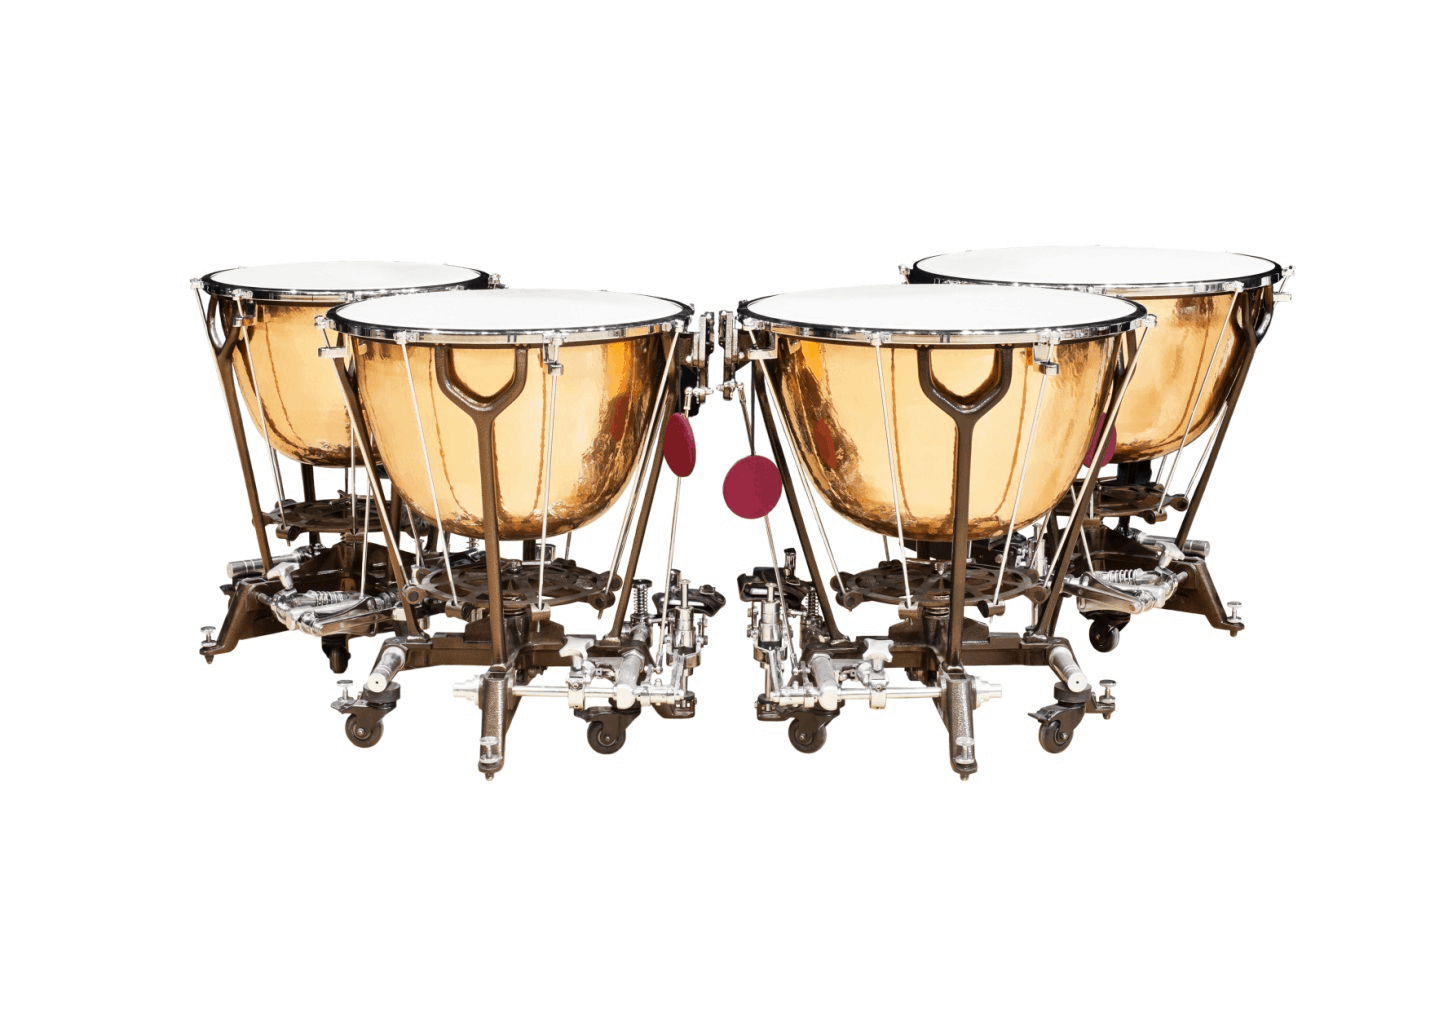 6 Types of Drums Used in an Orchestra